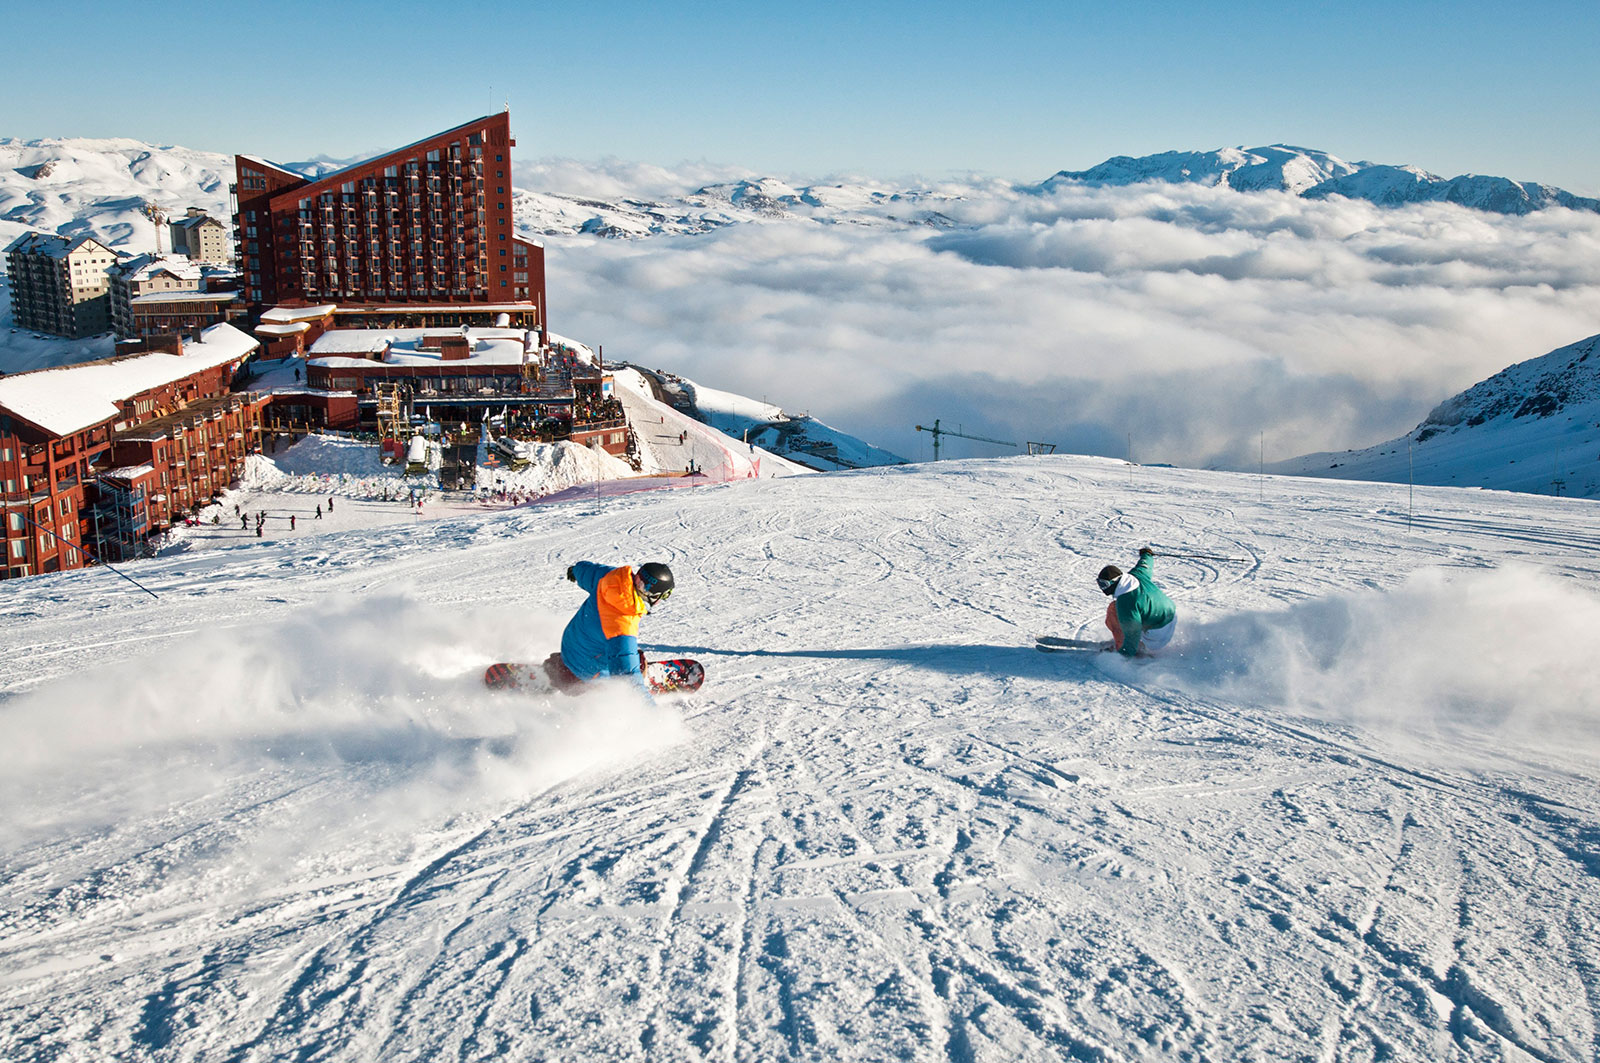 9606-ski-day-en-valle-nevado